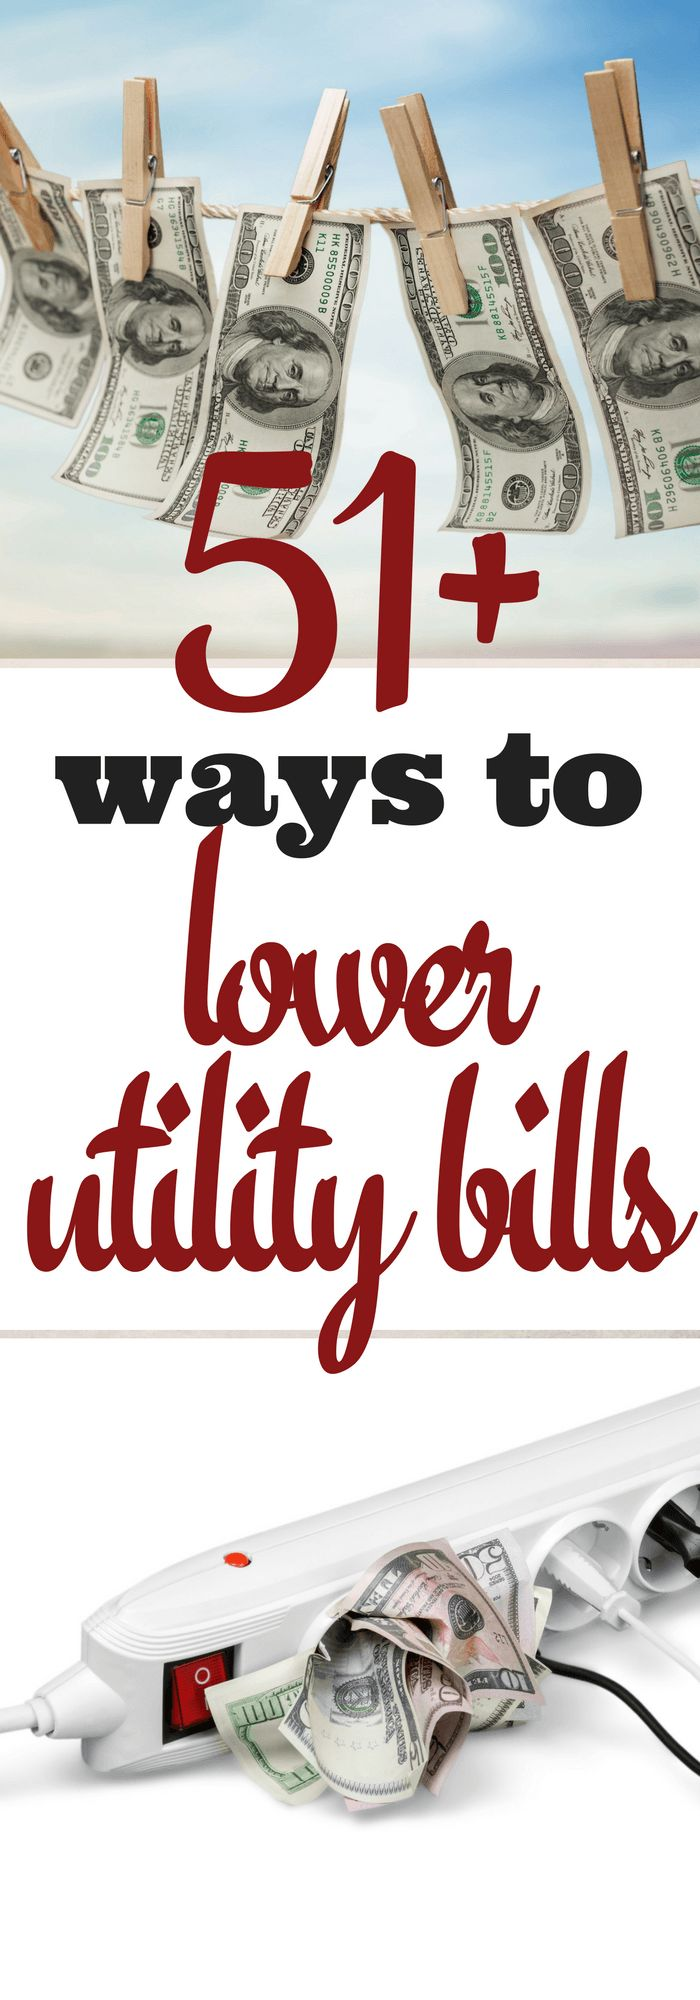 Quit spending more on utility bills than you need to